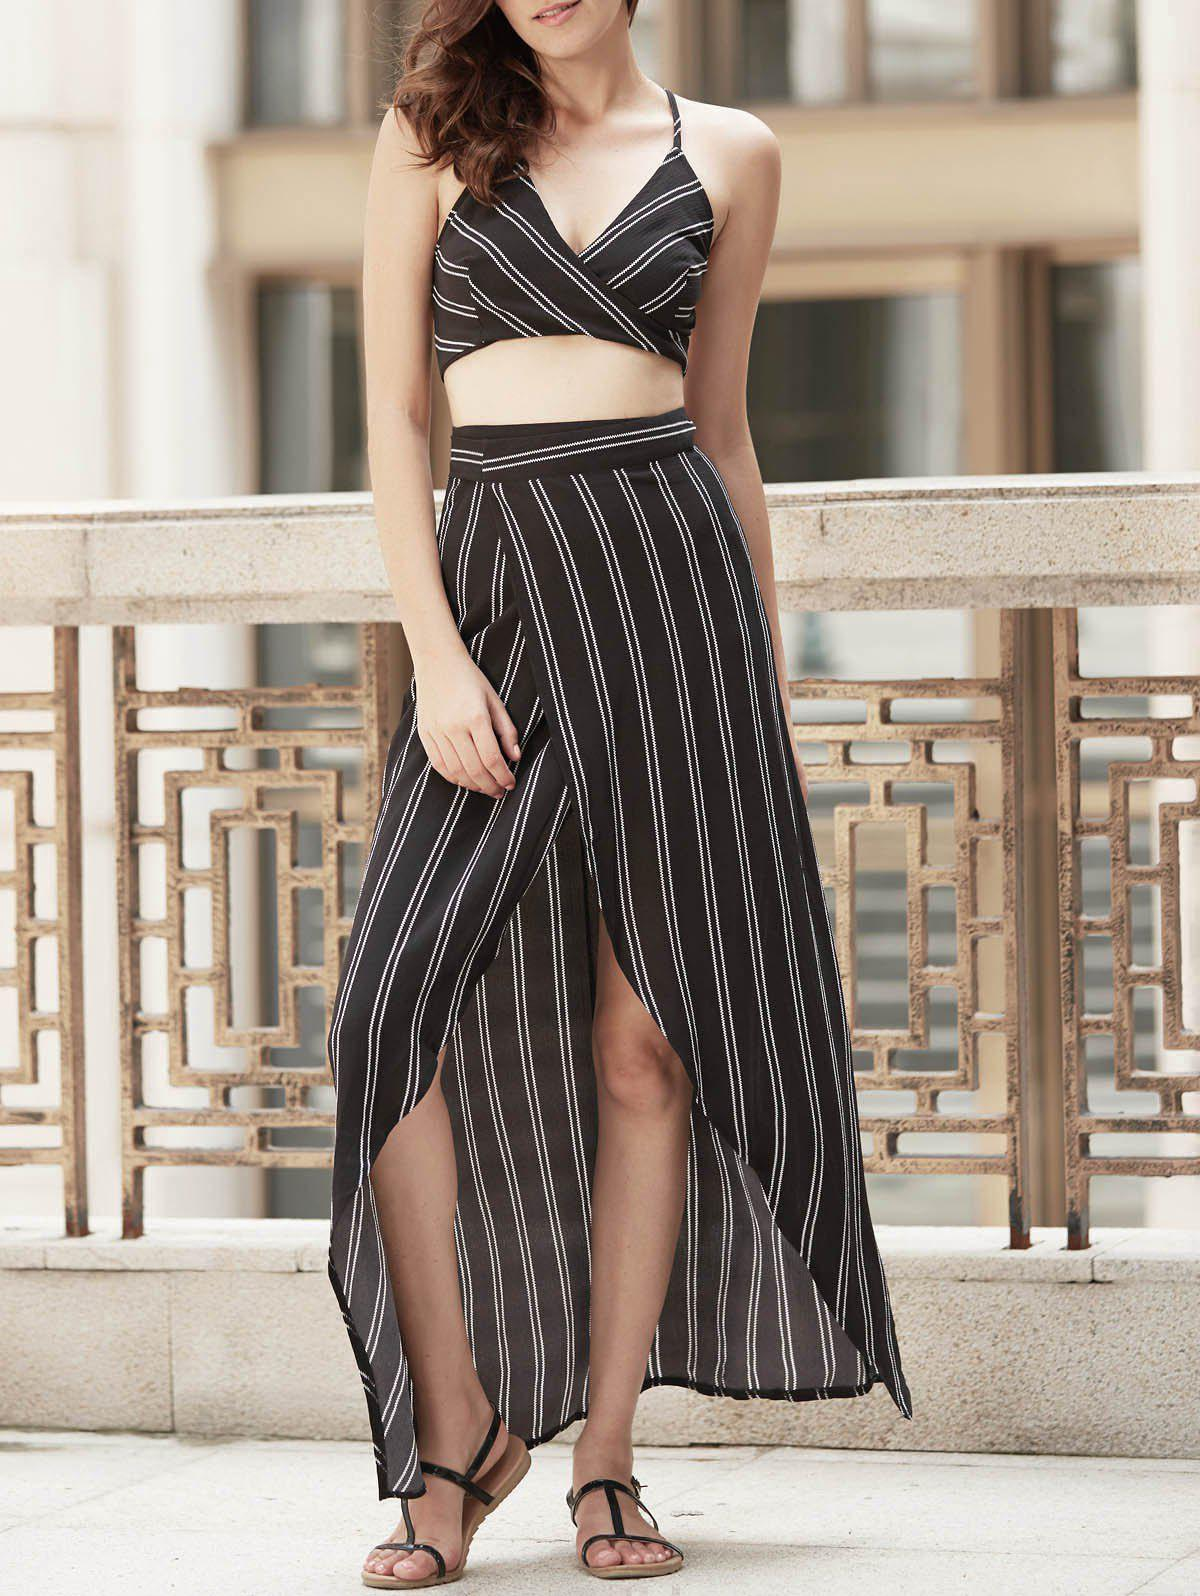 Spaghetti Strap Sleeveless Striped Cross-Back Backless Wrap Crop Top + Skirt - BLACK S